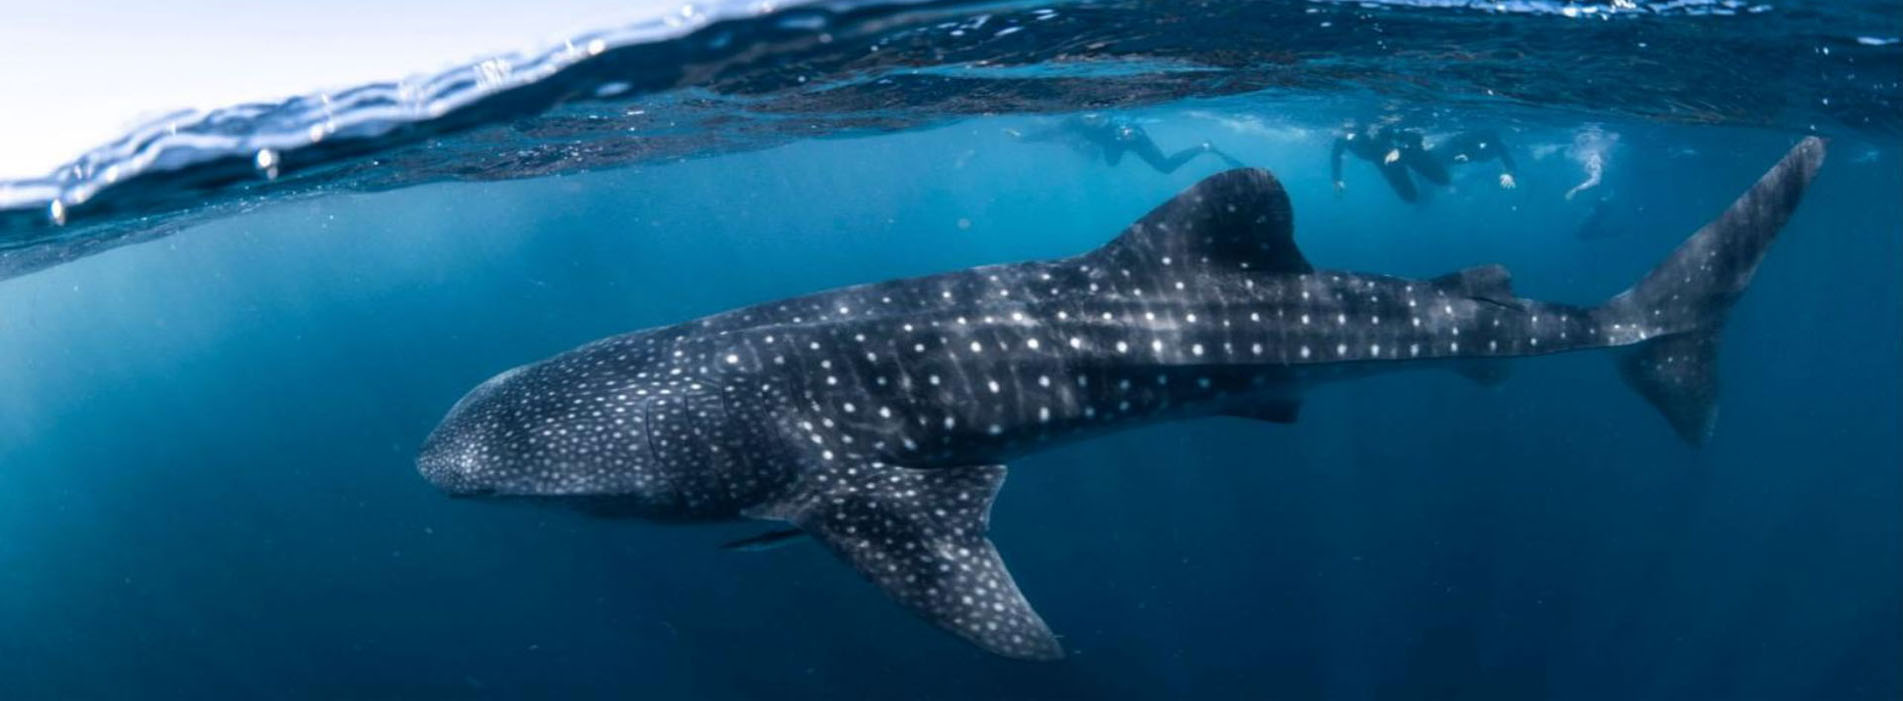 THUNDER-whale-shark-swimming-Coral-Bay-tours